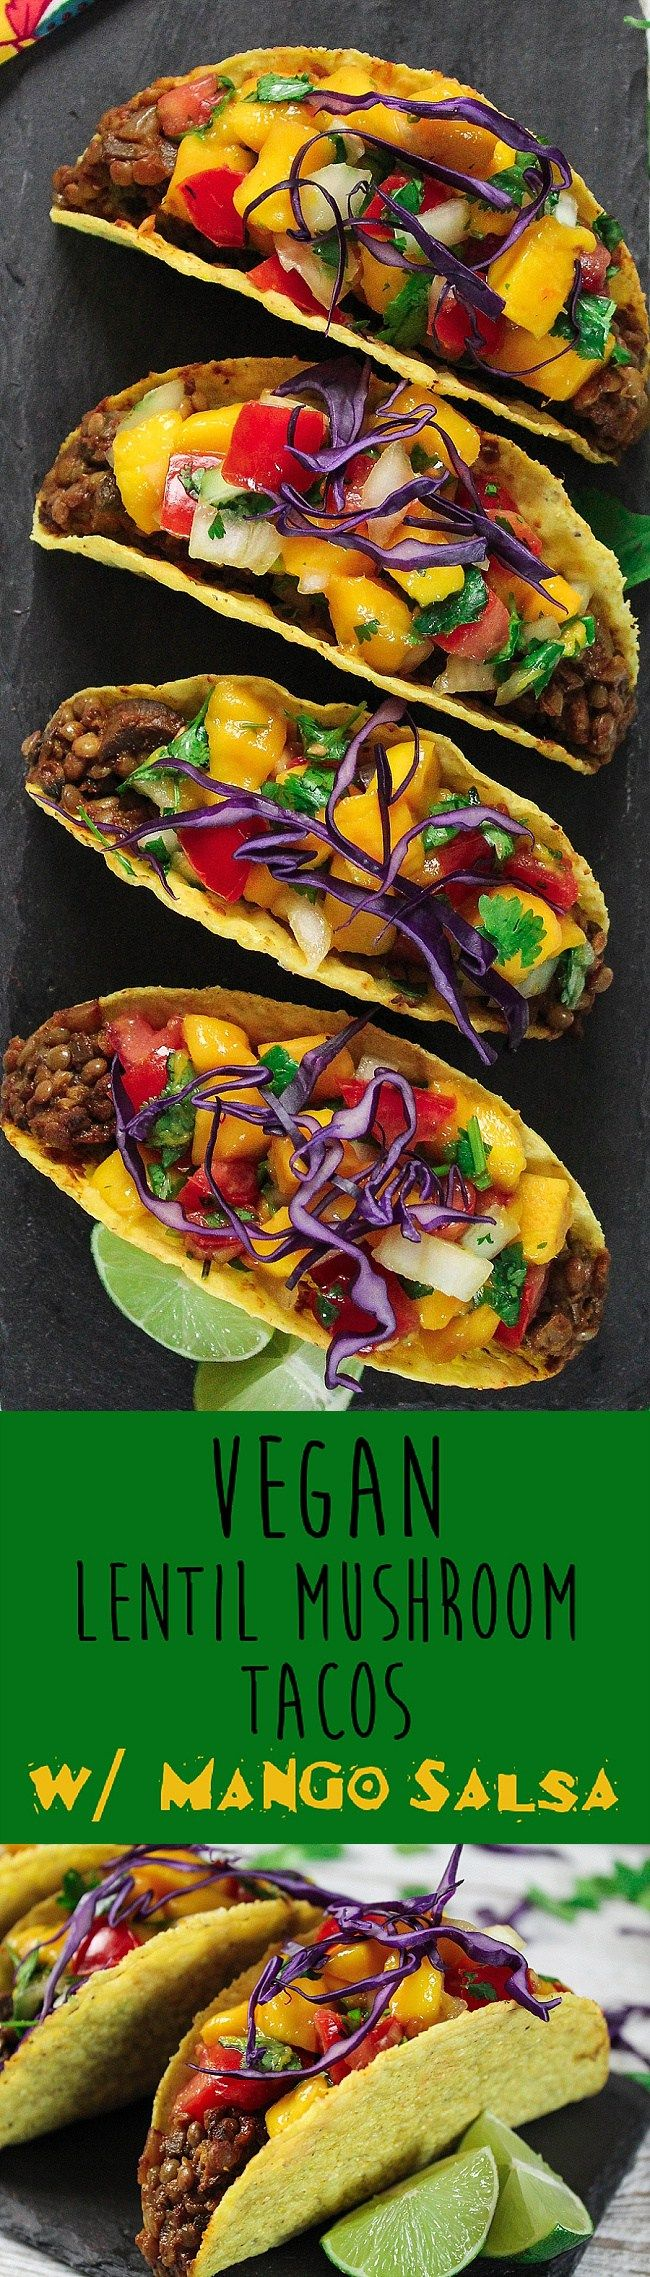 Taco night will never be the same after you try these Lentil Mushroom Tacos w/ Mango Salsa. They are sweet, savory and down right delicious!